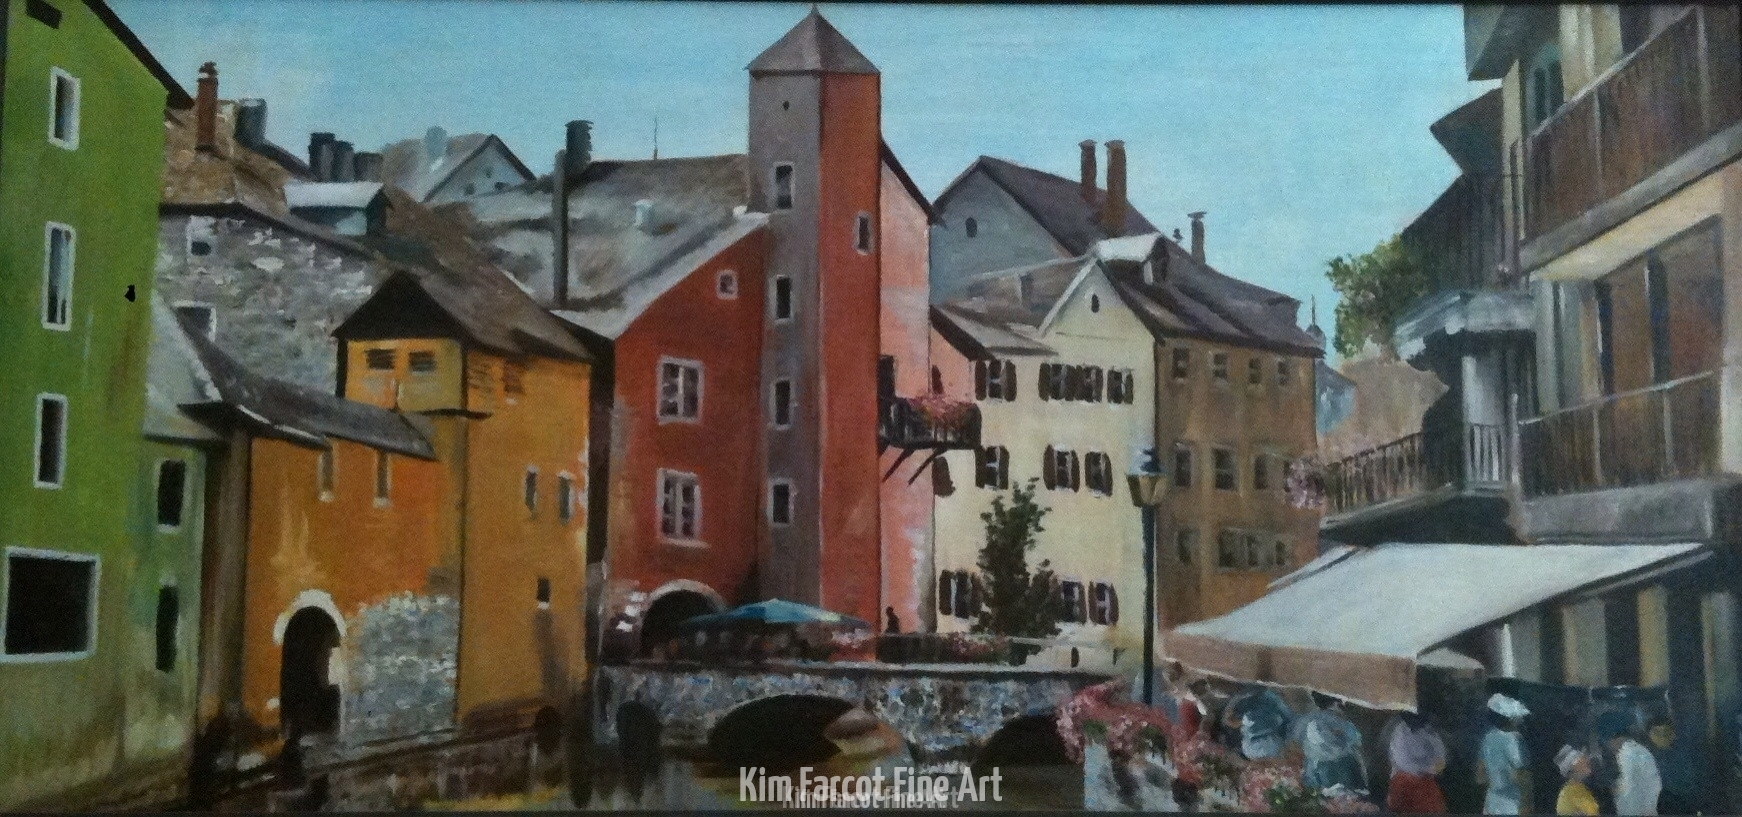 Annecy 1988, available